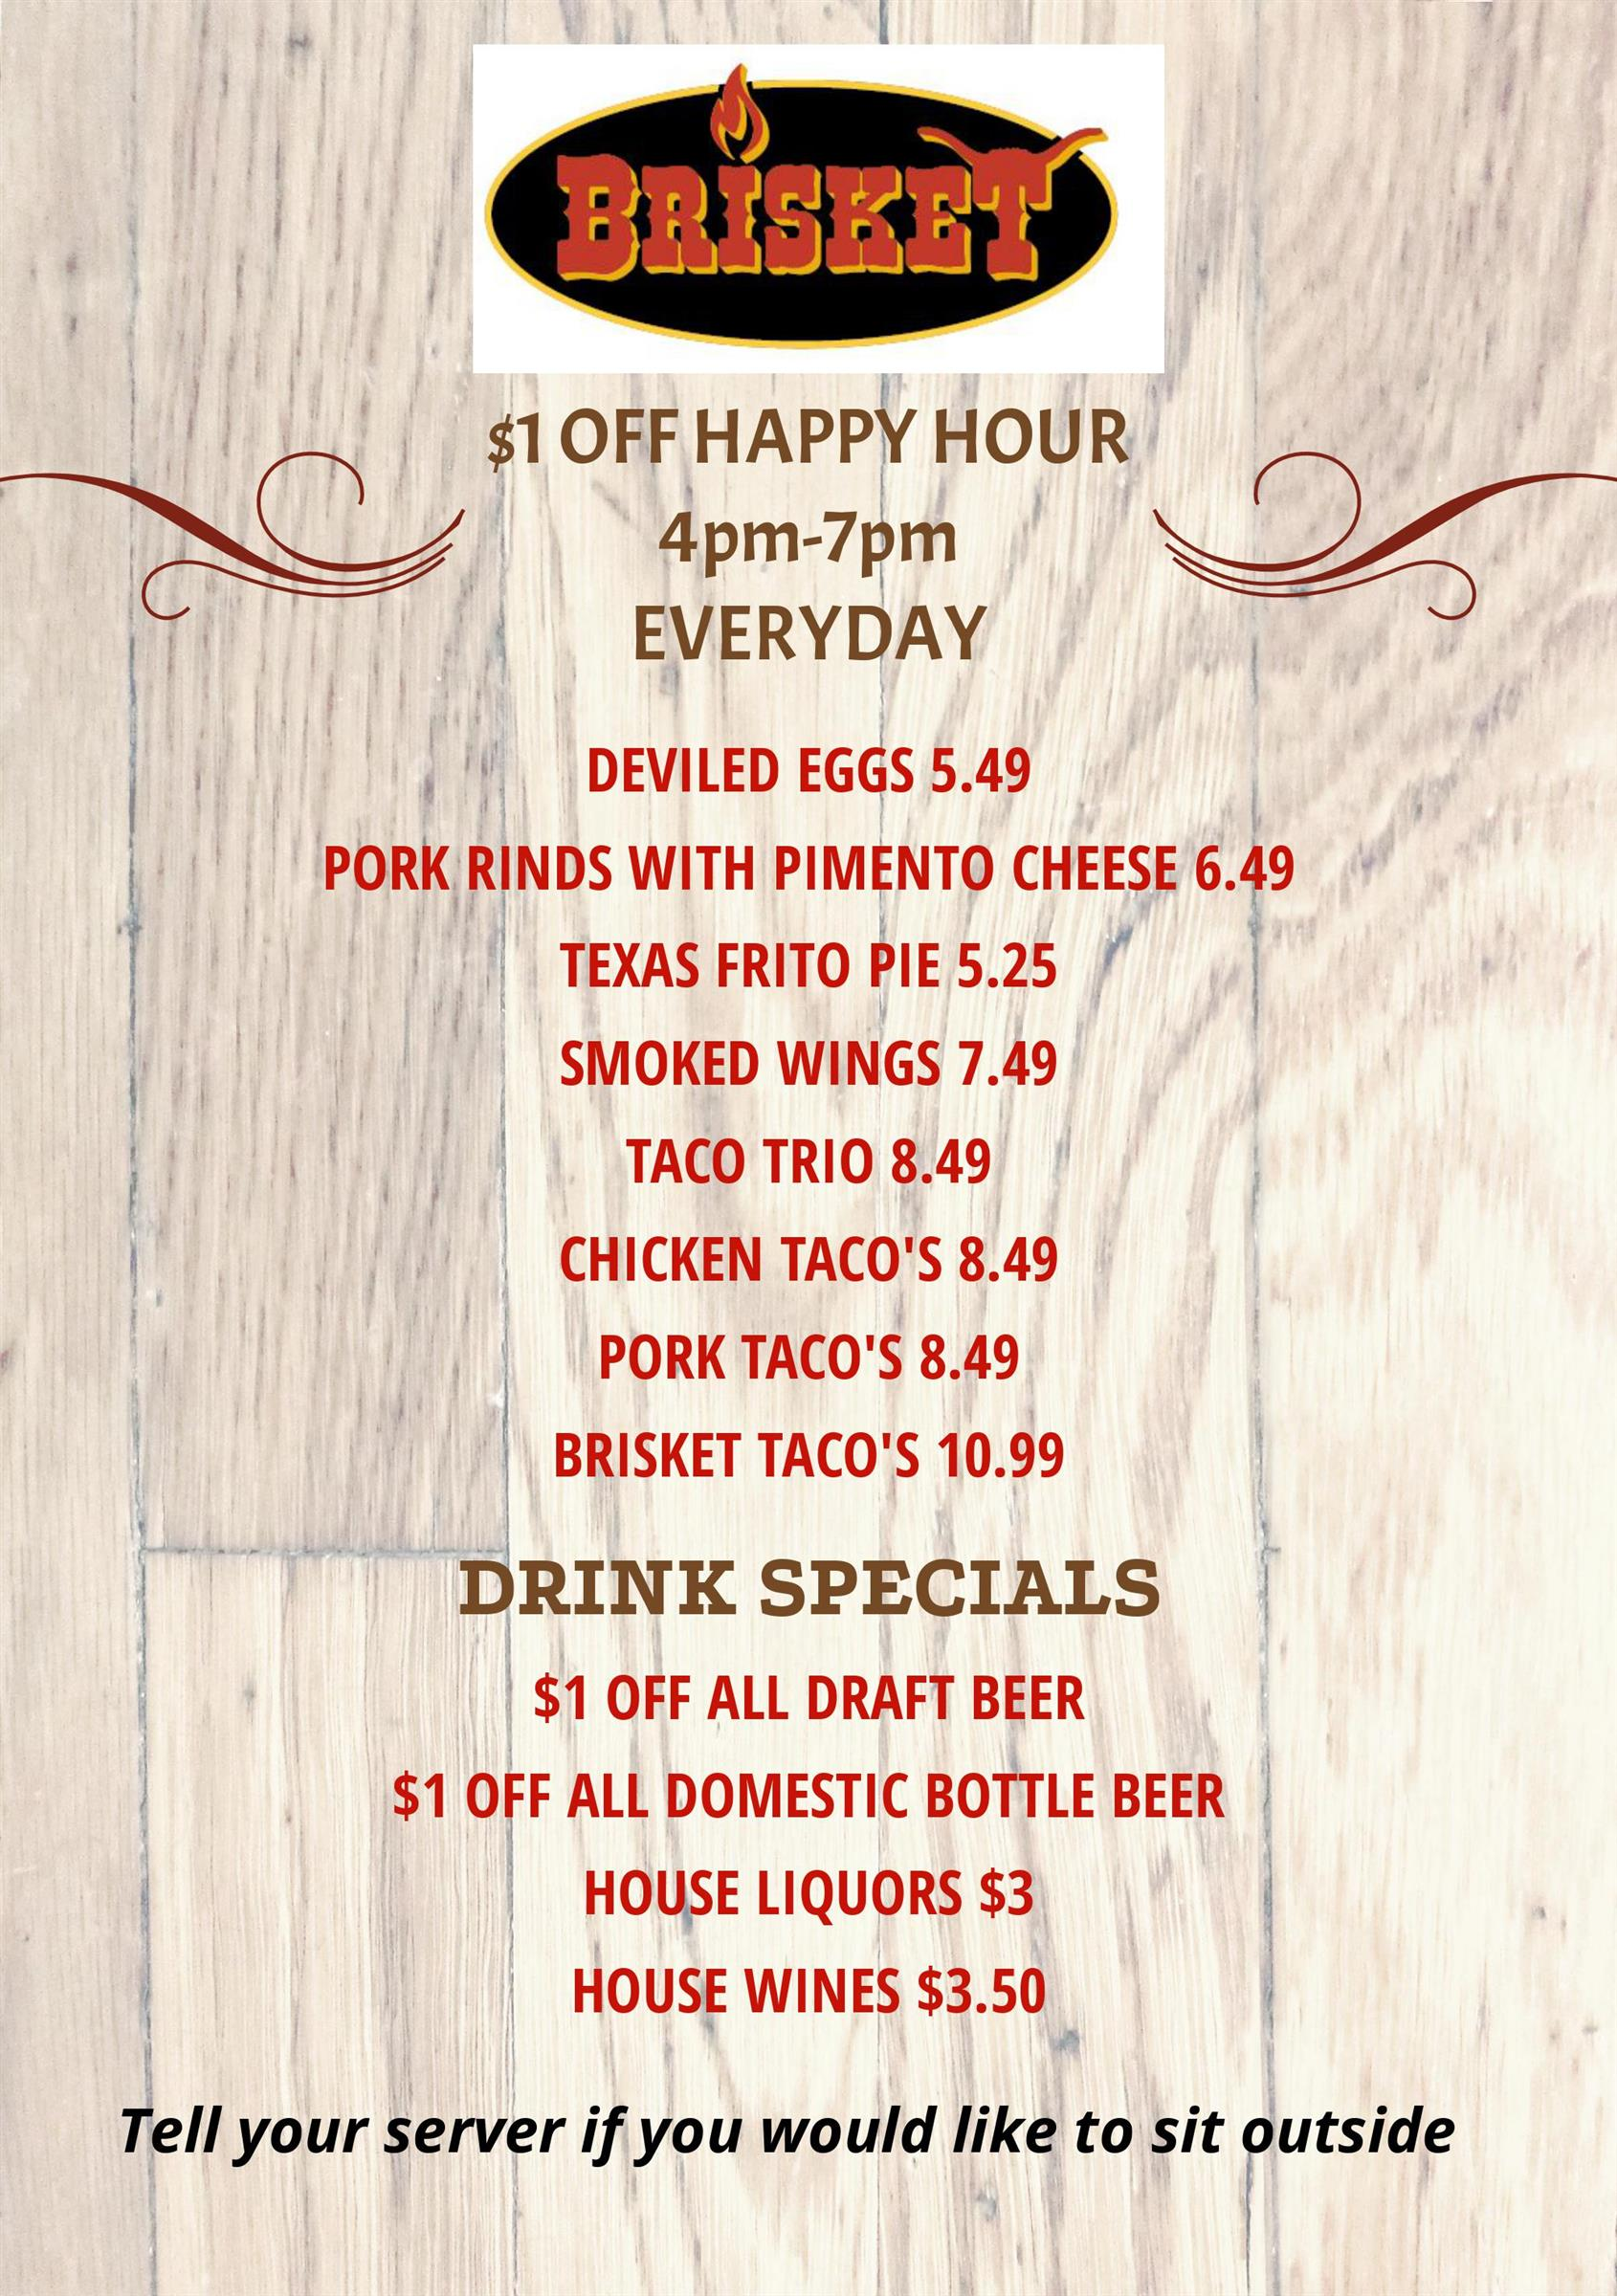 $1 OFF HAPPY HOUR 4pm-7pm EVERYDAY DEVILED EGGS 5.49 PORK RINDS WITH PIMENTO CHEESE 6.49 TEXAS FRITO PIE 5.25 SMOKED WINGS 7.49 TACO TRIO 8.49 CHICKEN TACO'S 8.49 PORK TACO'S 8.49 BRISKET TACO'S 10.99 DRINK SPECIALS $1 OFF ALL DRAFT BEER $1 OFF ALL DOMESTIC BOTTLE BEER HOUSE LIQUORS $3 HOUSE WINES $3.50 Tell your server if you would like to sit outside